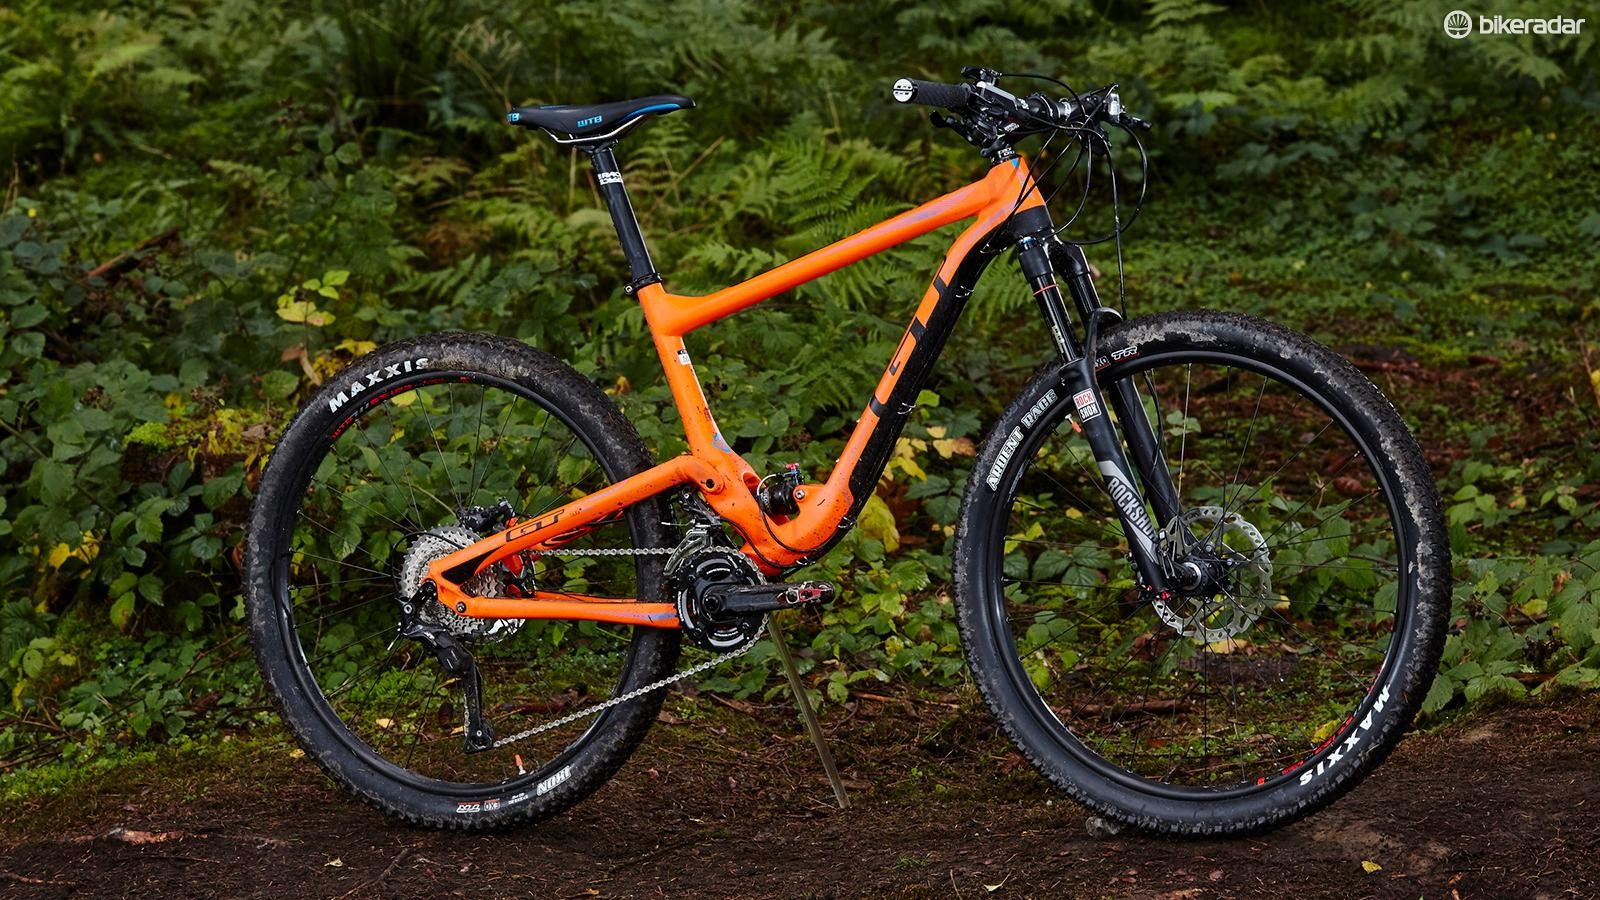 The Helion may be short on travel but this 'aggressive XC' bike is no flexy featherweight